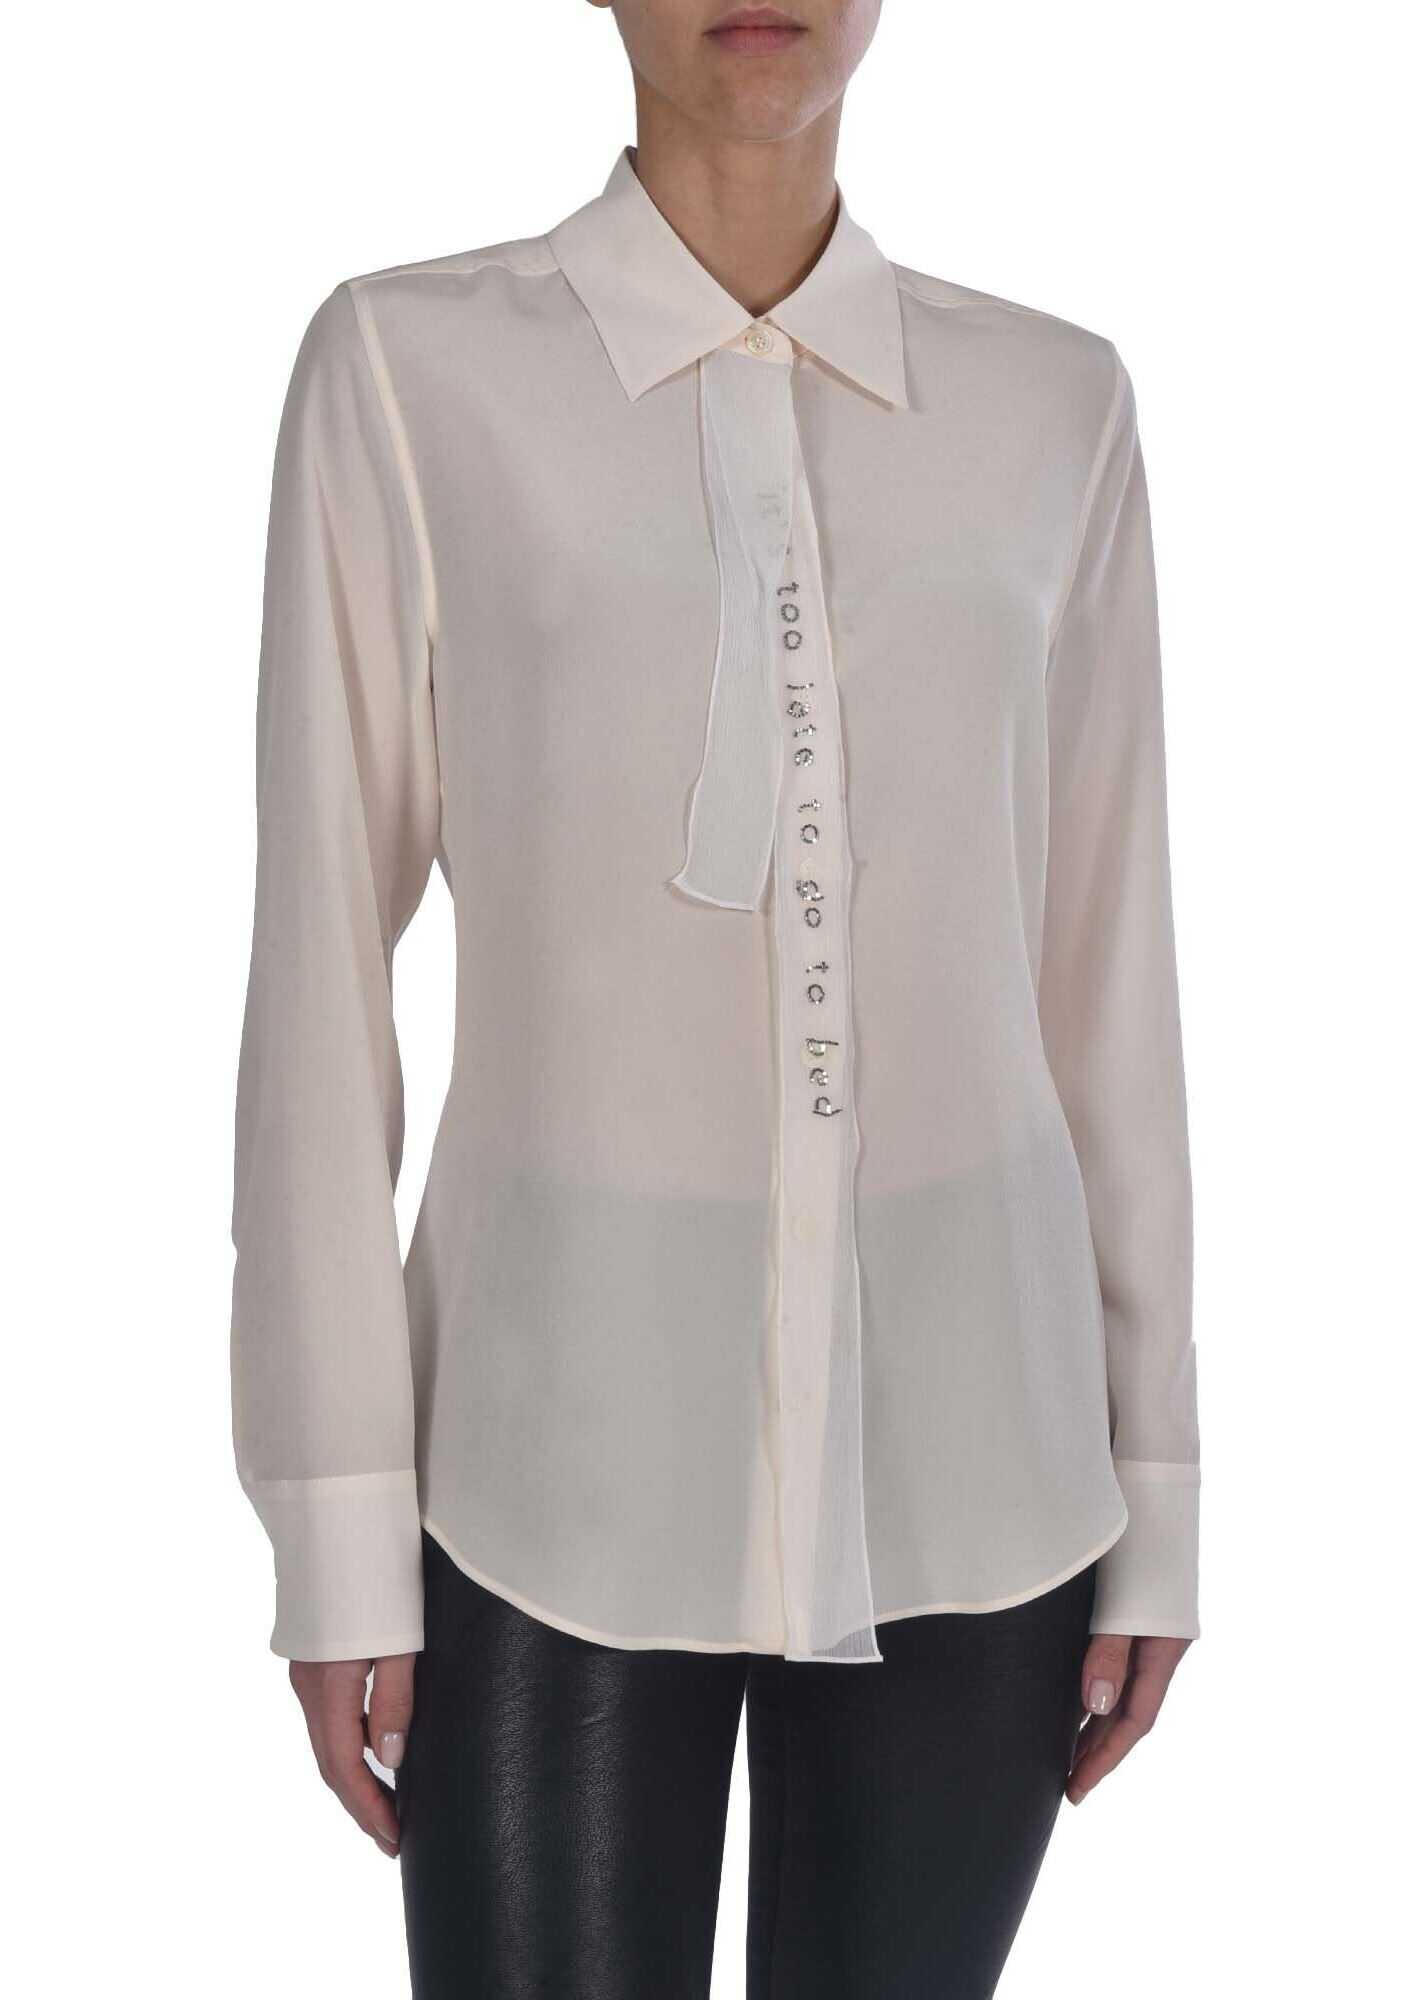 adidas by Stella McCartney Shirt In Cream Color With Ribbons Cream